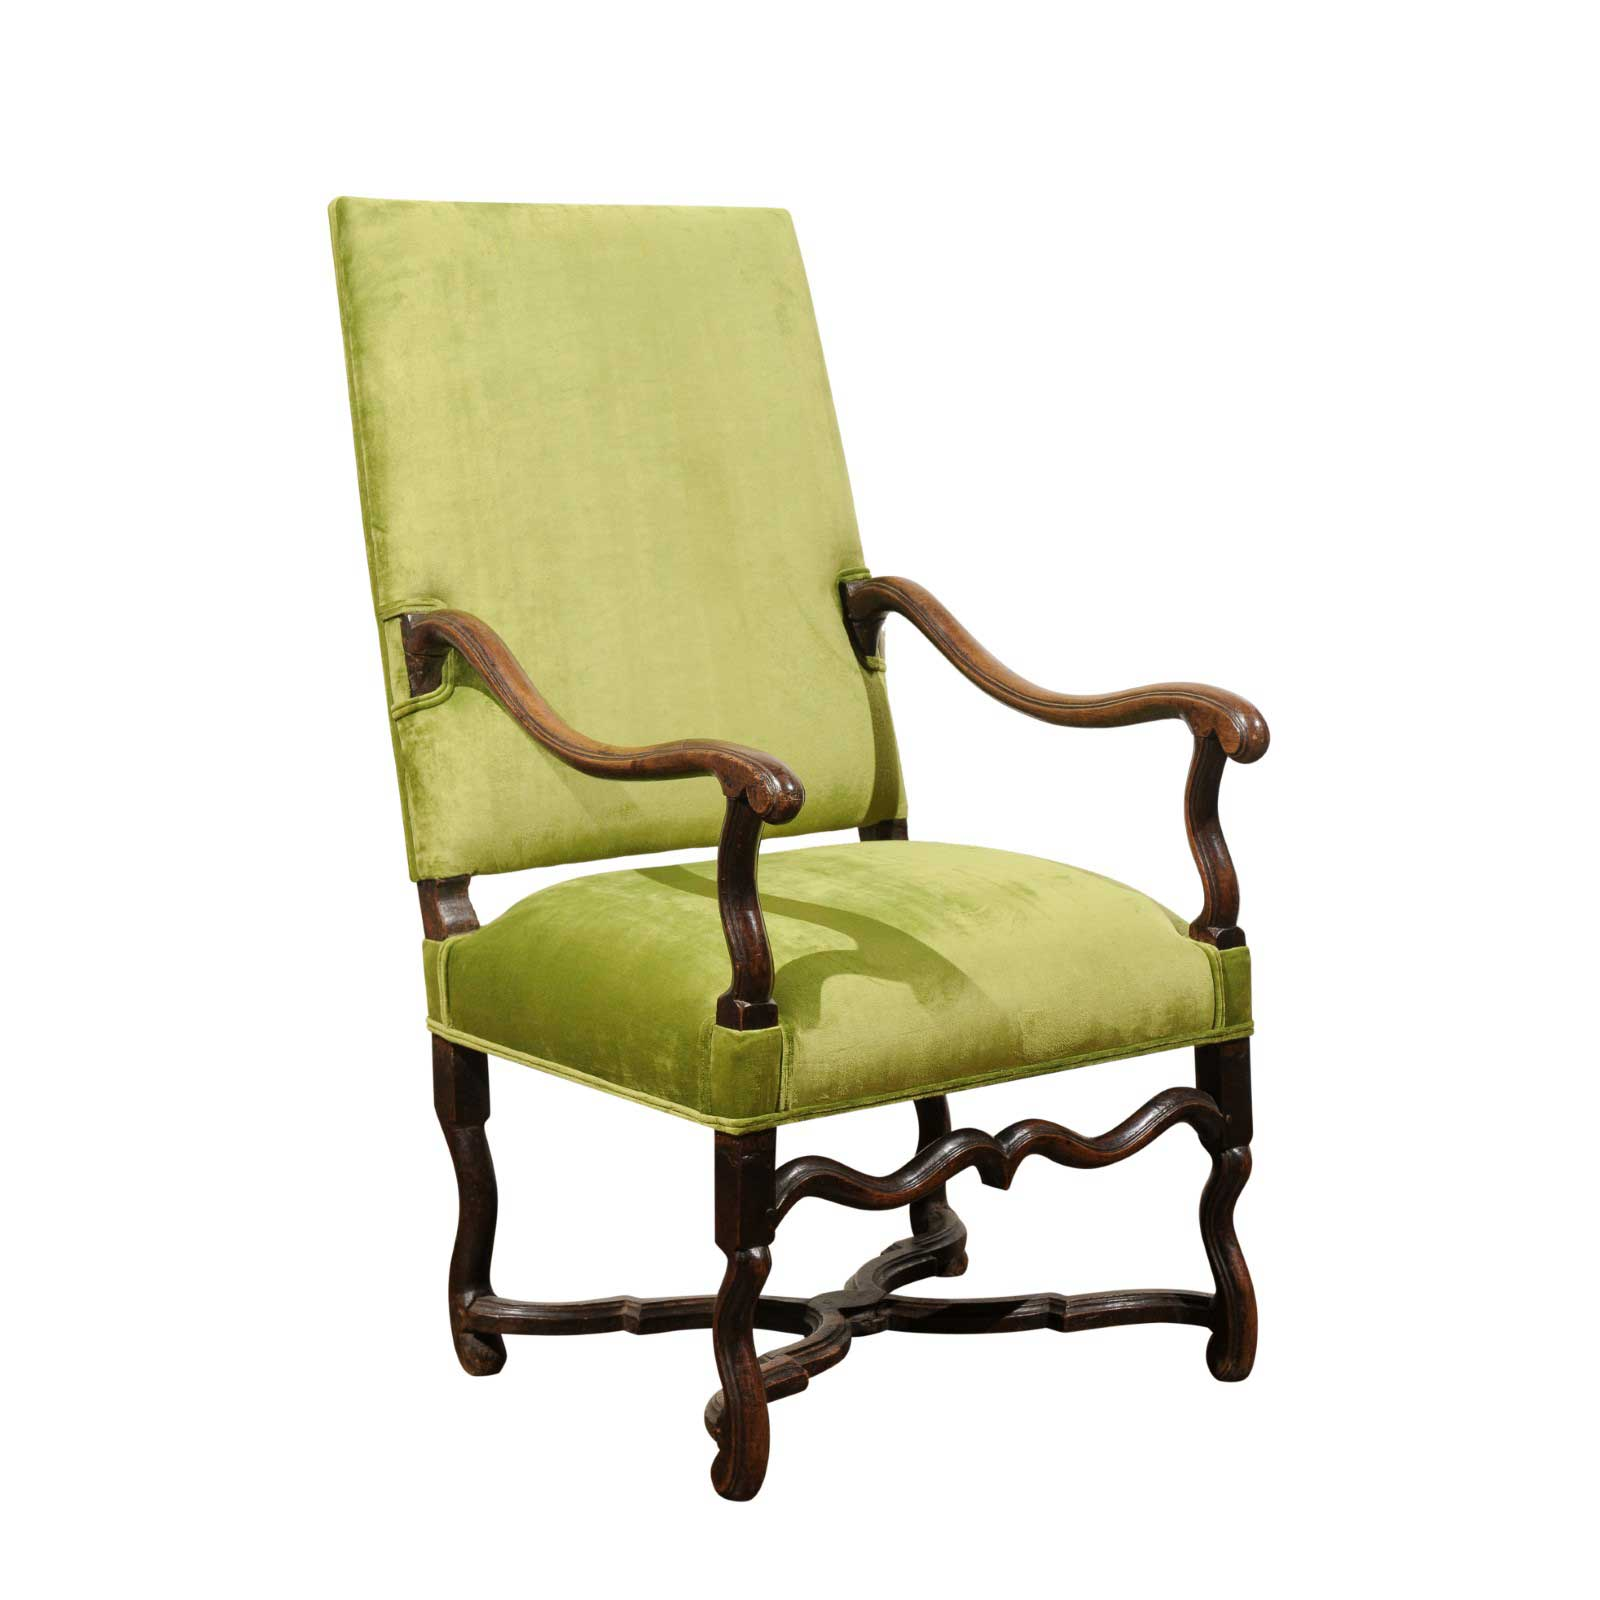 Fauteuils Louis 13 French Louis Xiii Style Green Upholstered Carved Fauteuil à La Reine C 1820